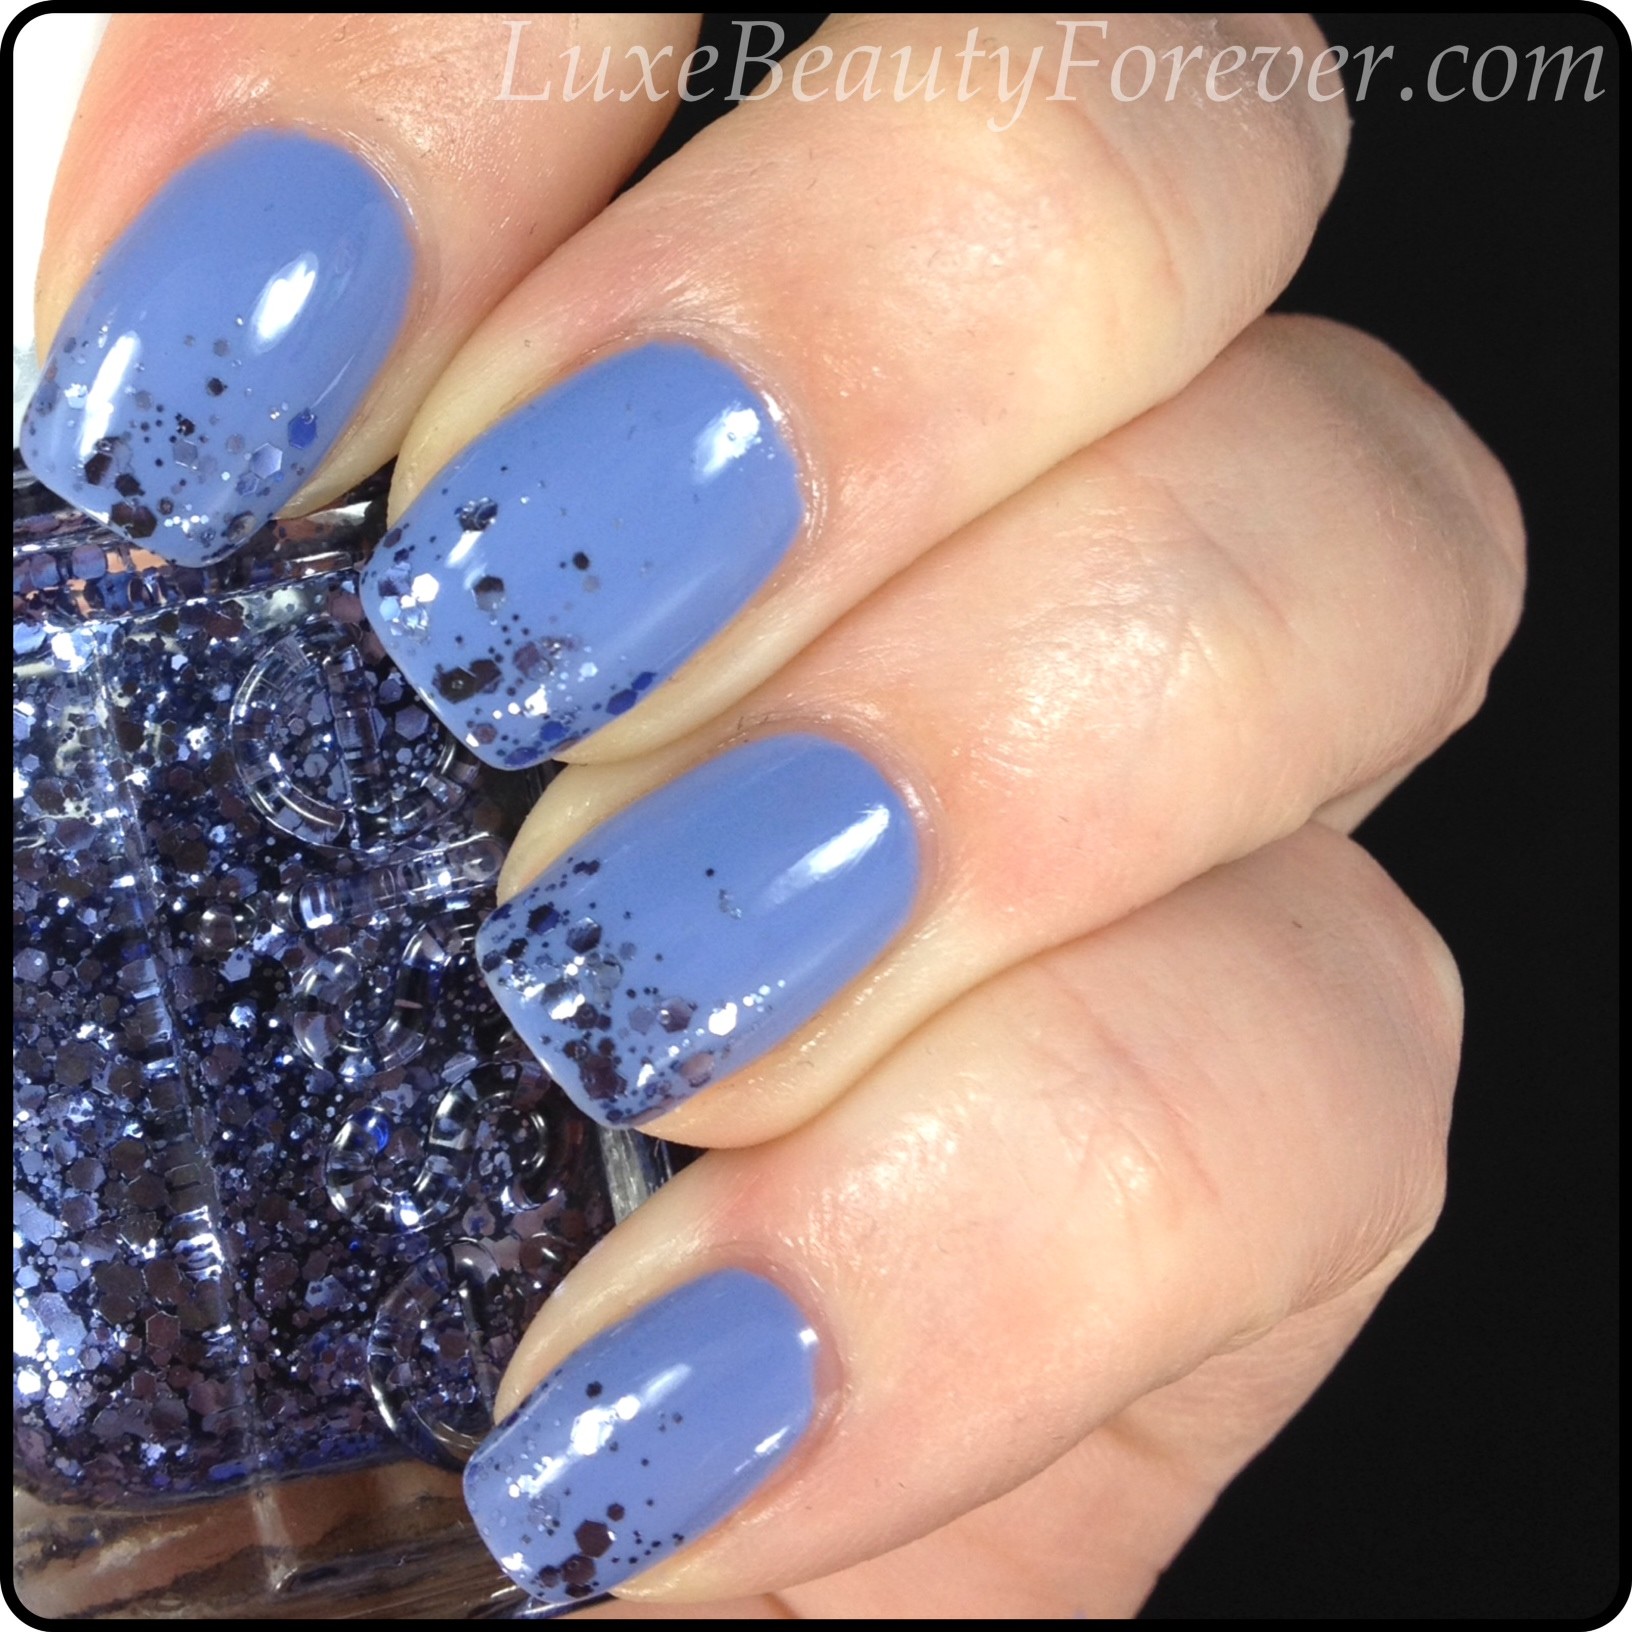 Lovely Periwinkle Nails with Glitter Tips | Luxe Beauty Forever